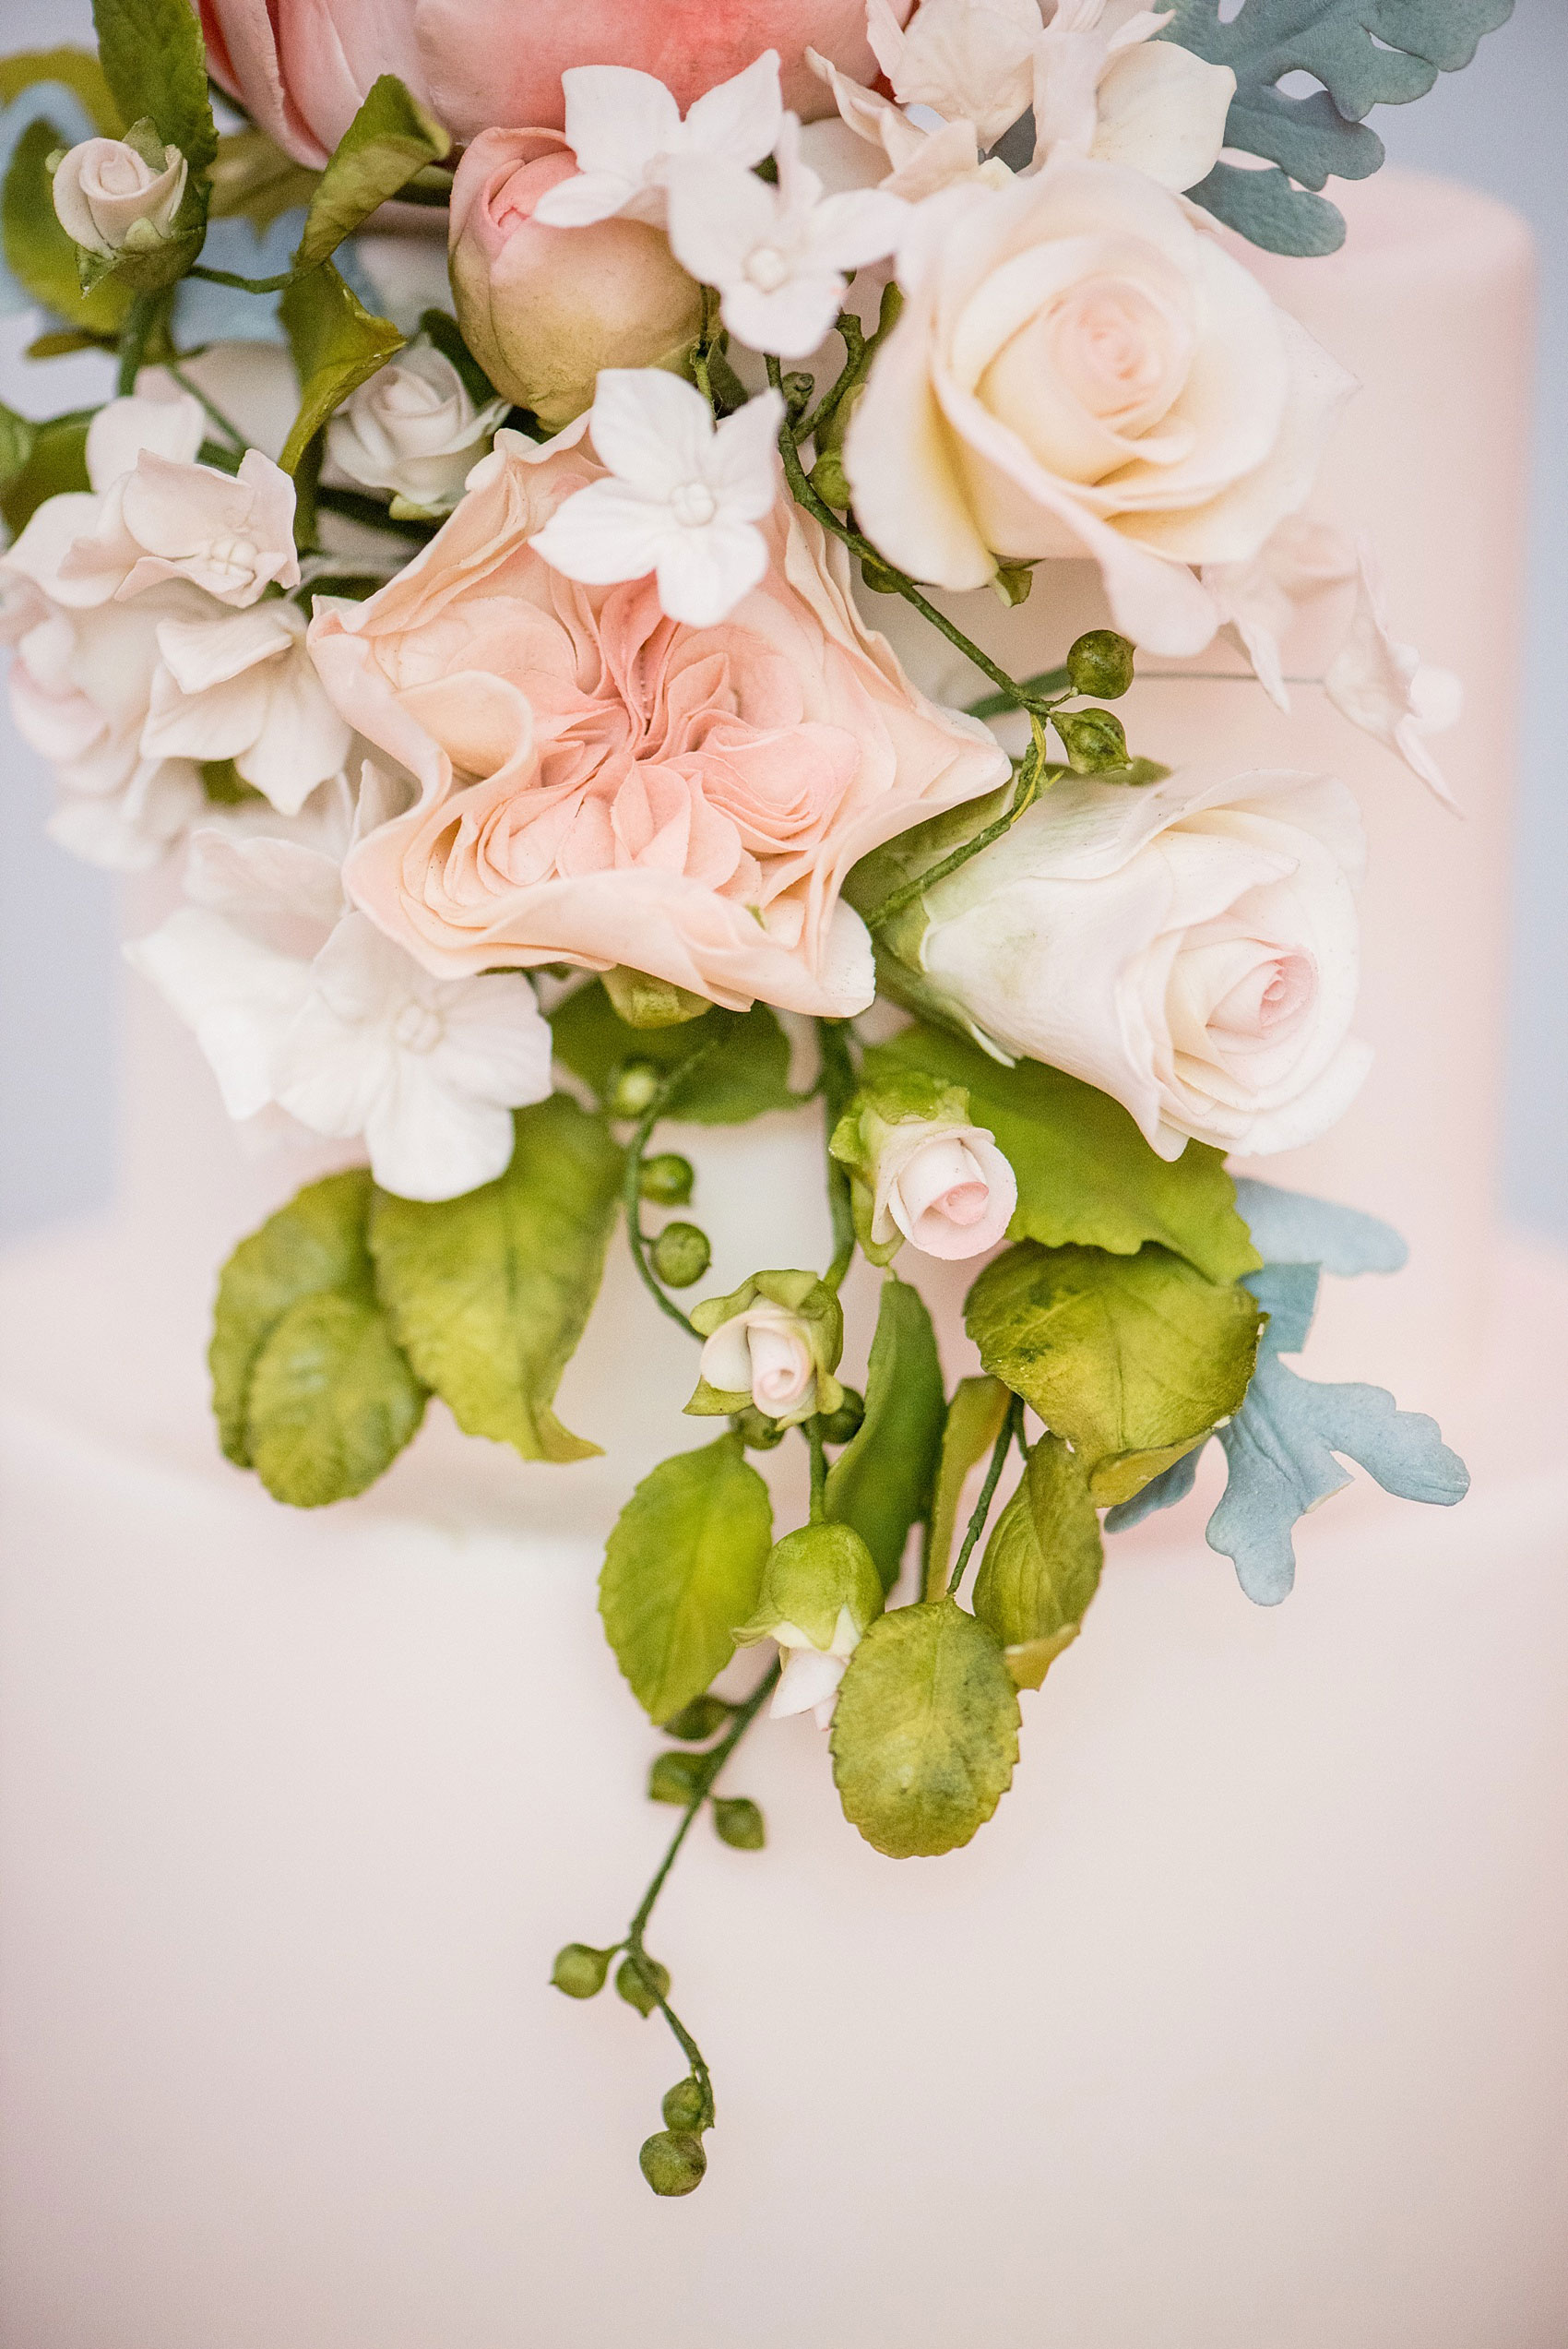 Mikkel Paige Photography photos of a luxury wedding in NYC. Image of India House reception and elegant white tiered cake with gumpaste flowers by Madison Lee.